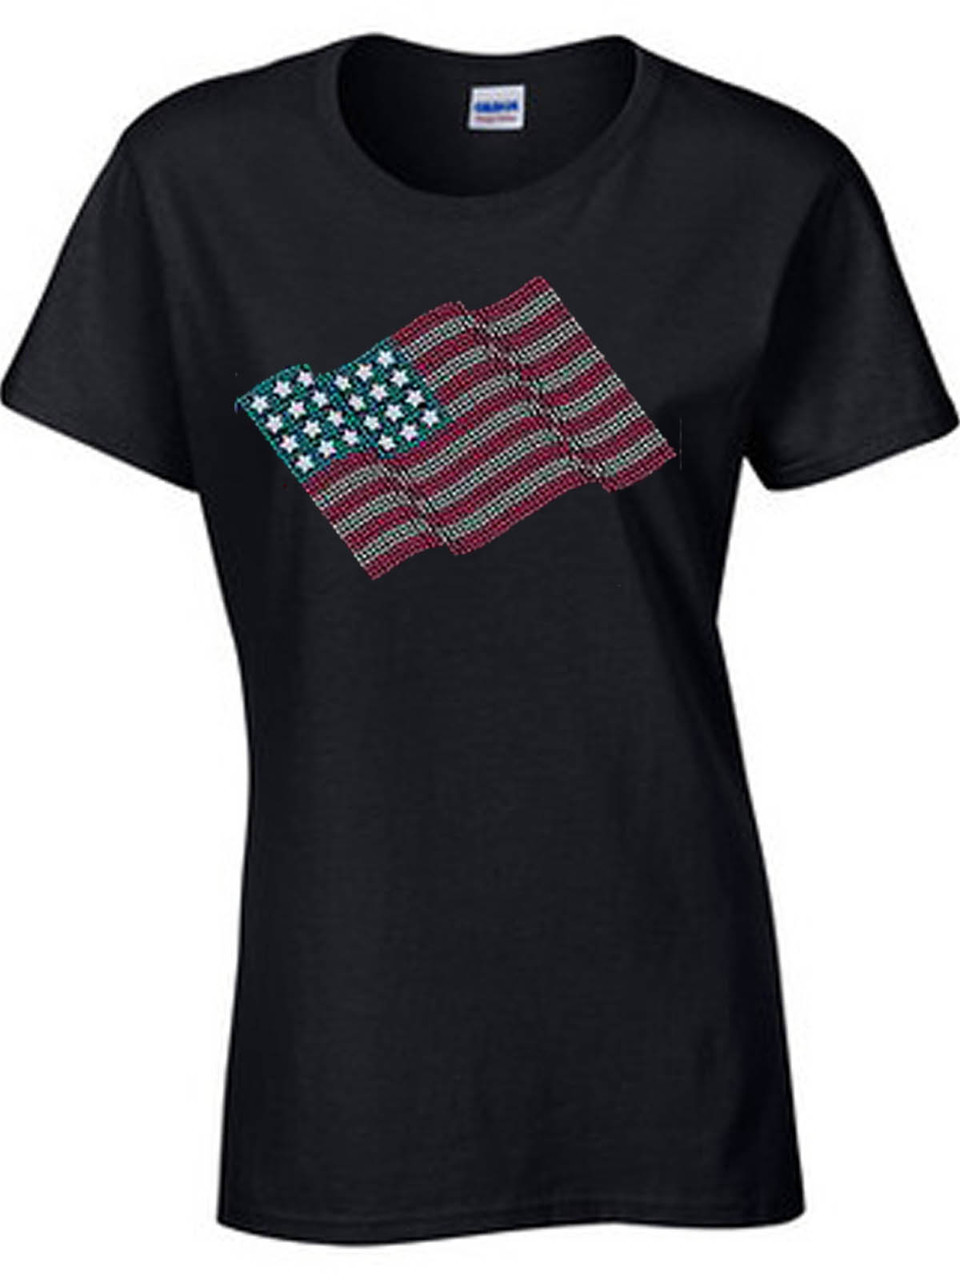 Glitter American Flag Women's Short Sleeve T-Shirt